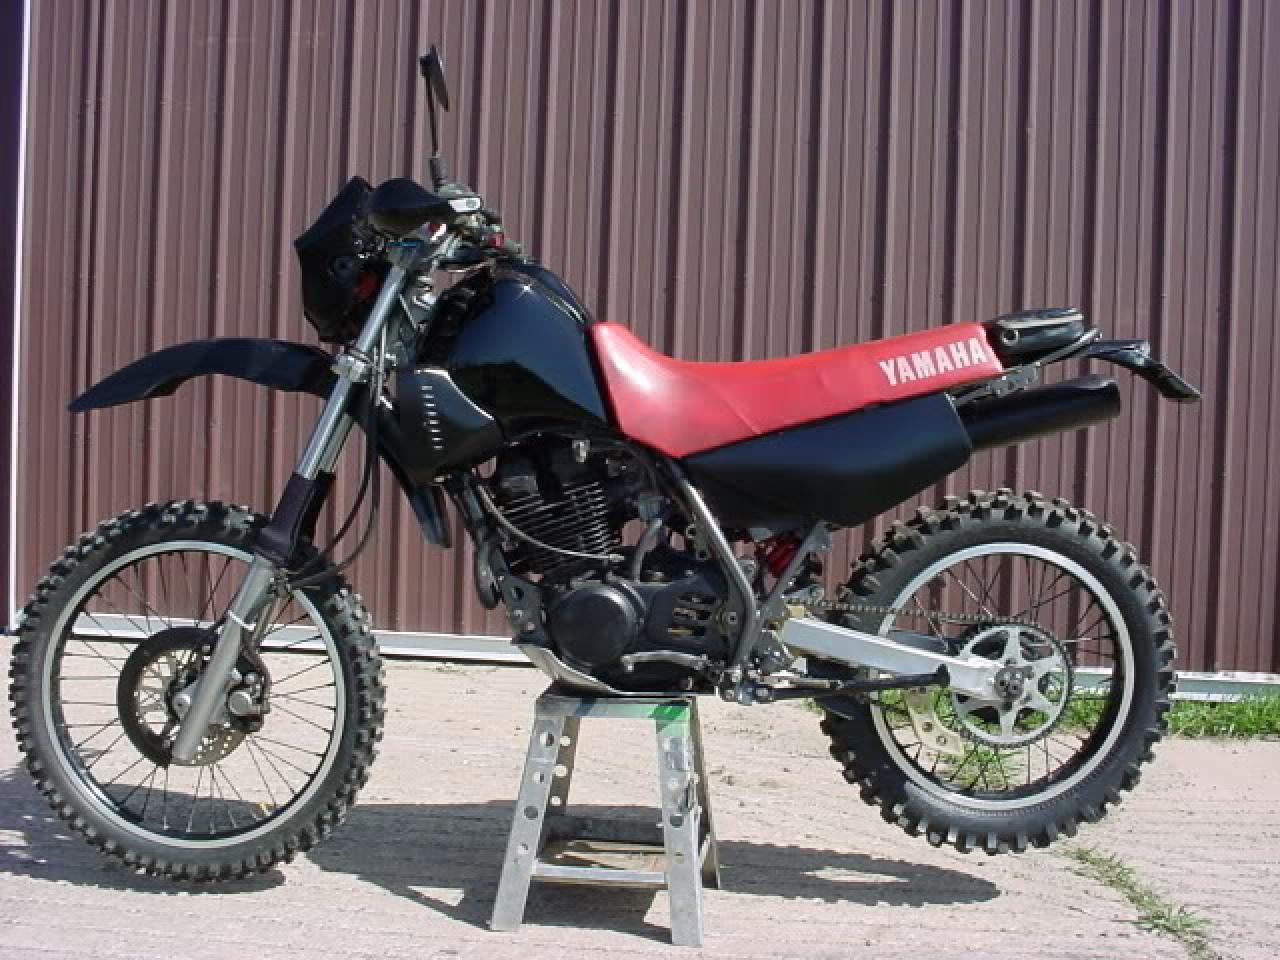 1990 yamaha xt 350 reduced effect moto zombdrive com. Black Bedroom Furniture Sets. Home Design Ideas